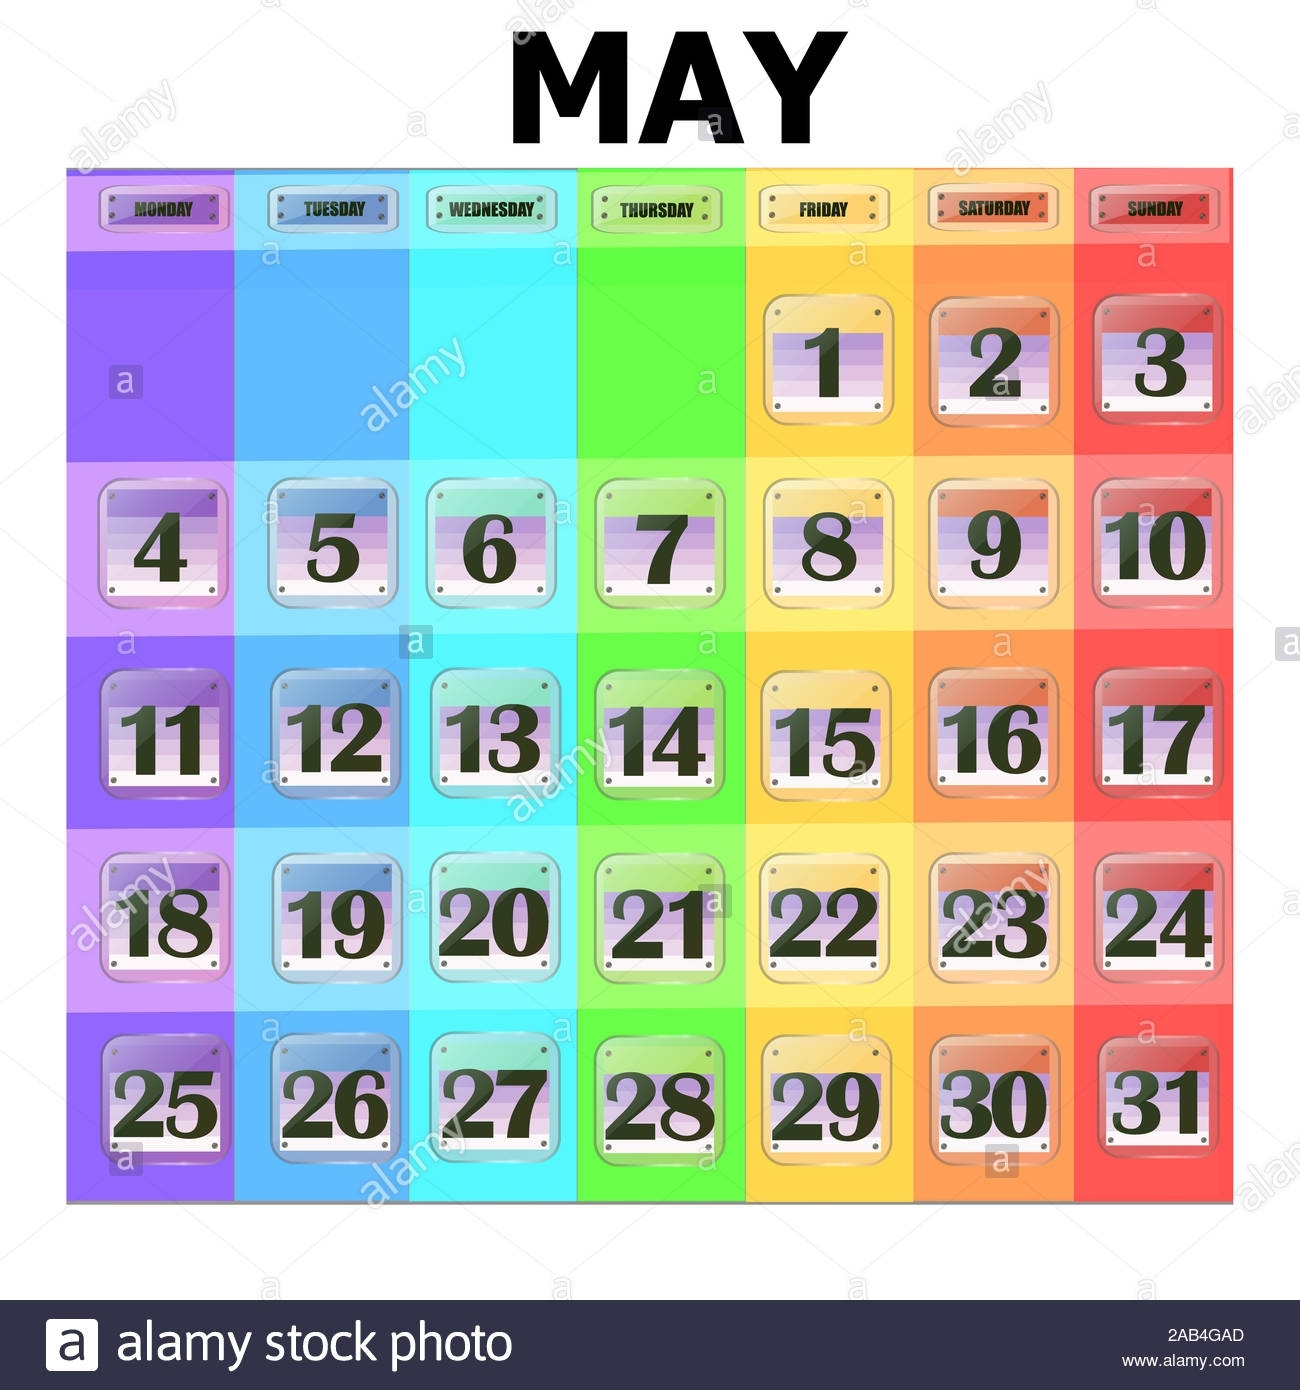 Colorful Calendar For May 2020 In English. Set Of Buttons for Special Days By Month In 2020